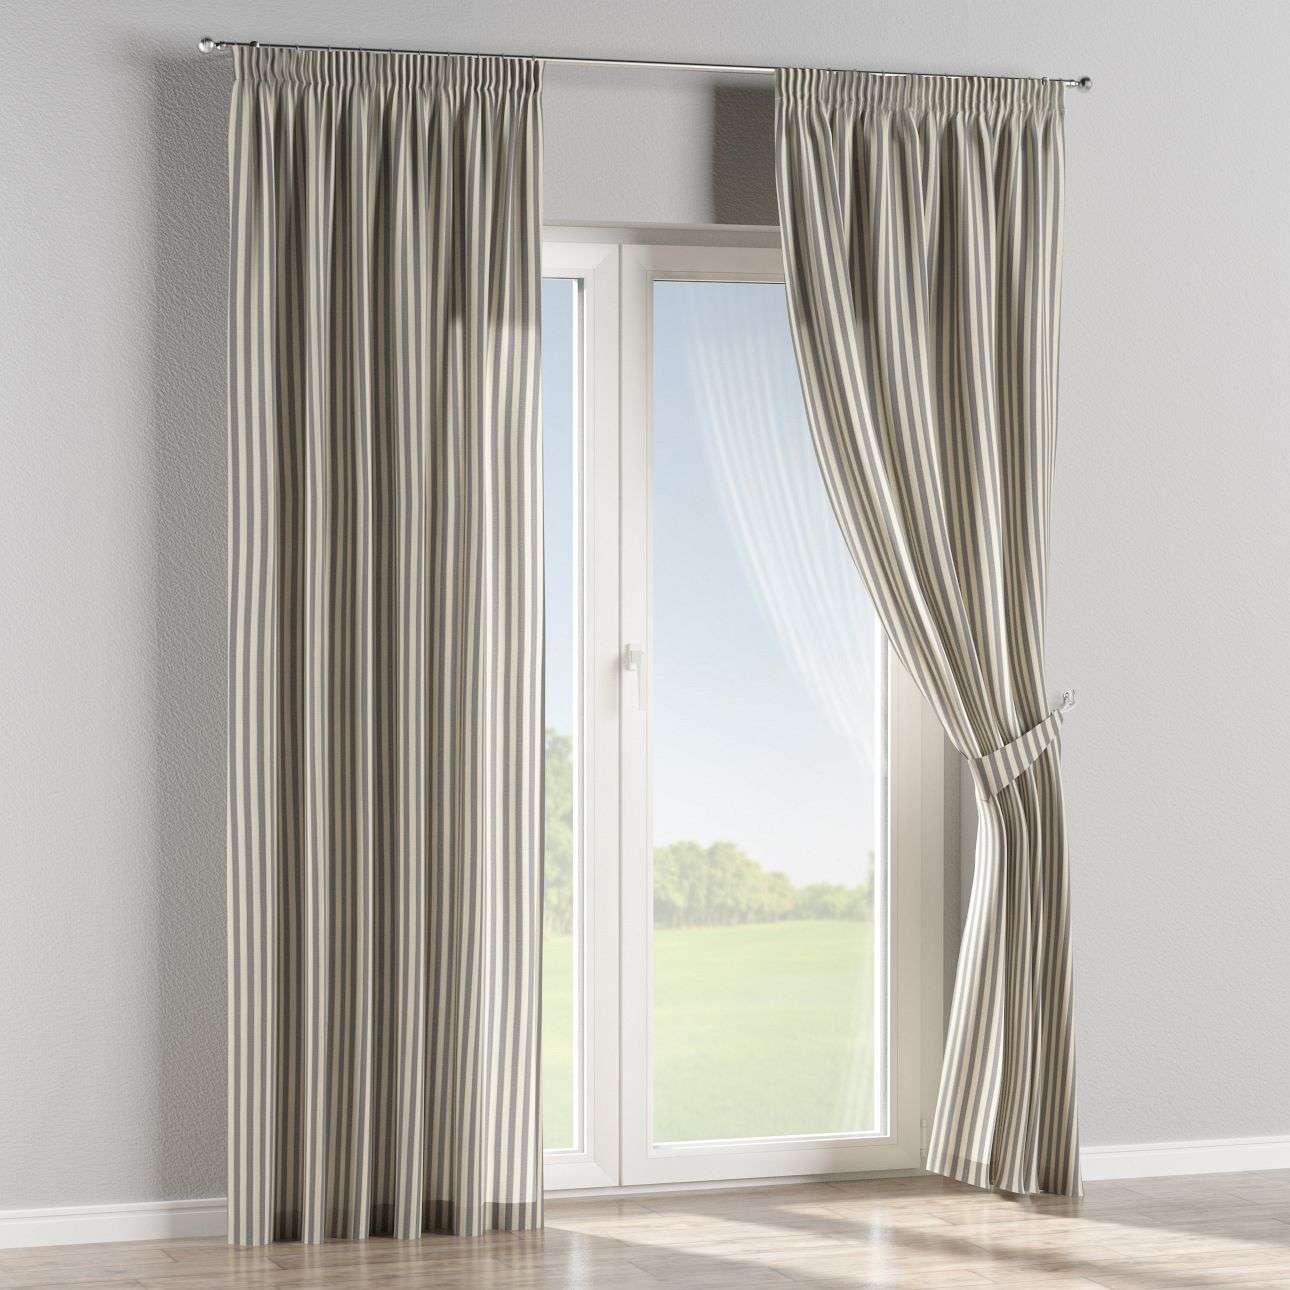 Pencil pleat curtains 130 x 260 cm (51 x 102 inch) in collection Quadro, fabric: 136-02